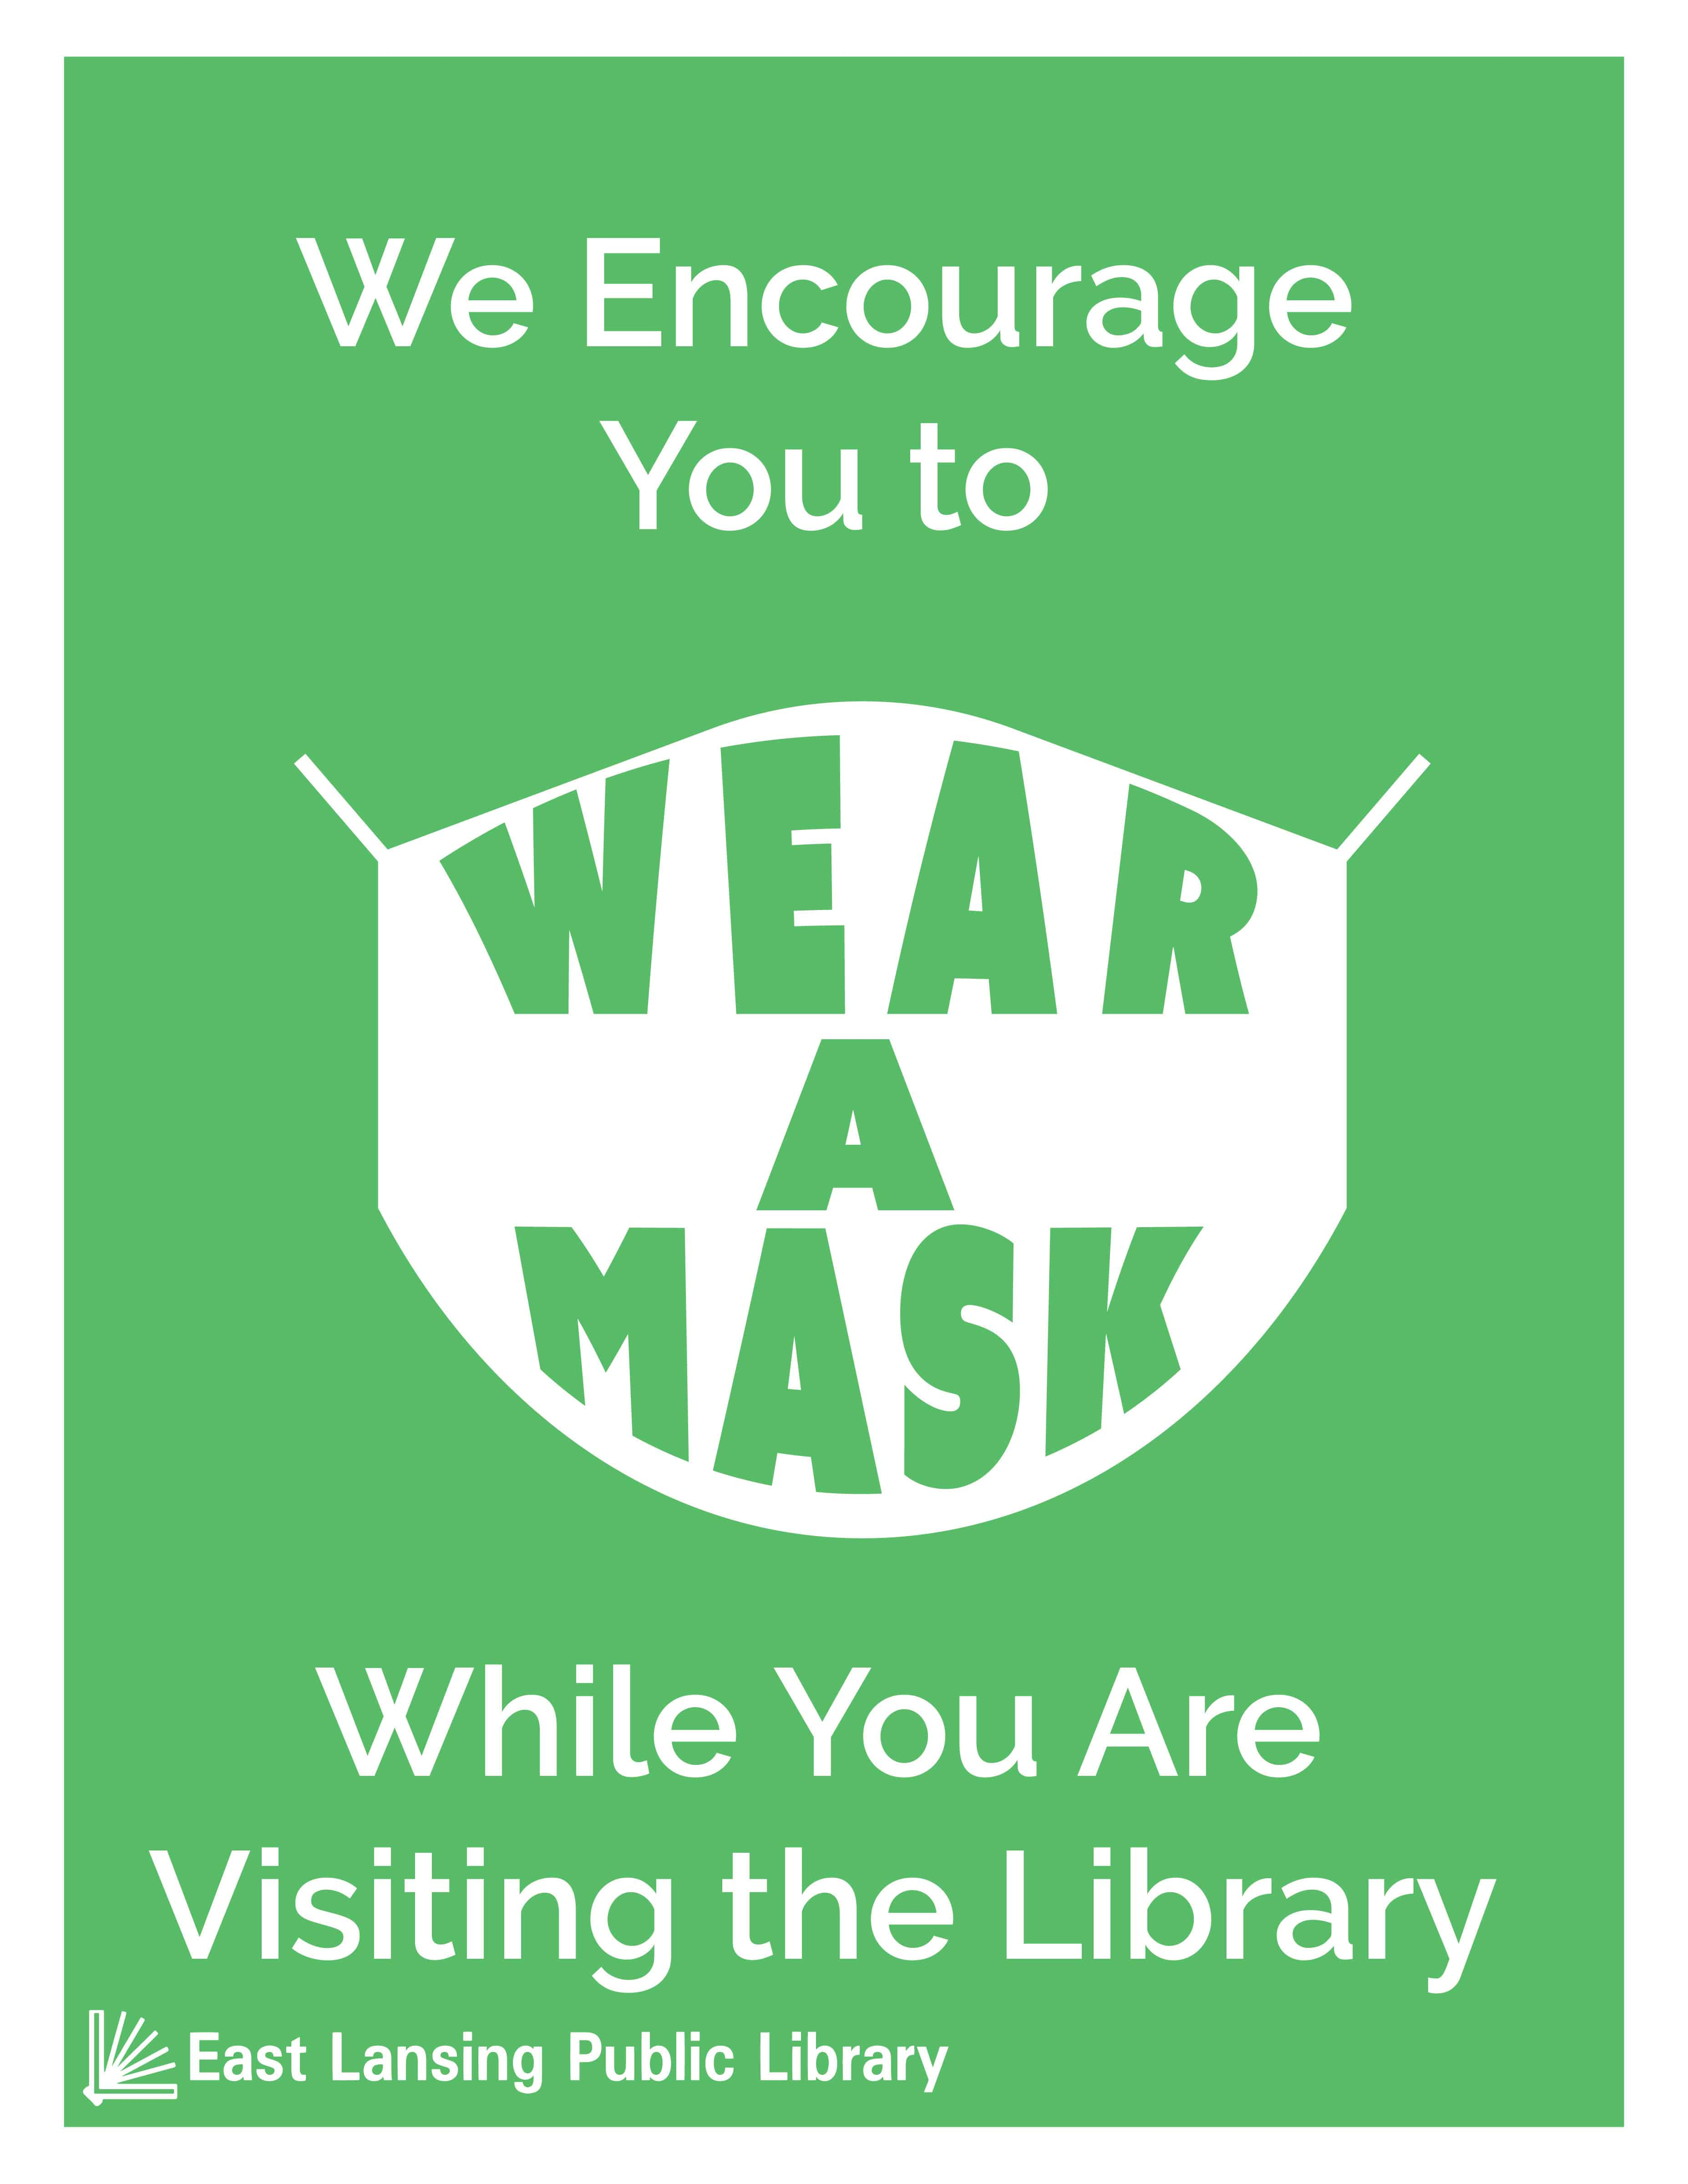 Icon of a fabric surgical mask, with the words Wear a Mask on the face covering. Other text reads We encourage you to wear a mask while you are visiting the library.